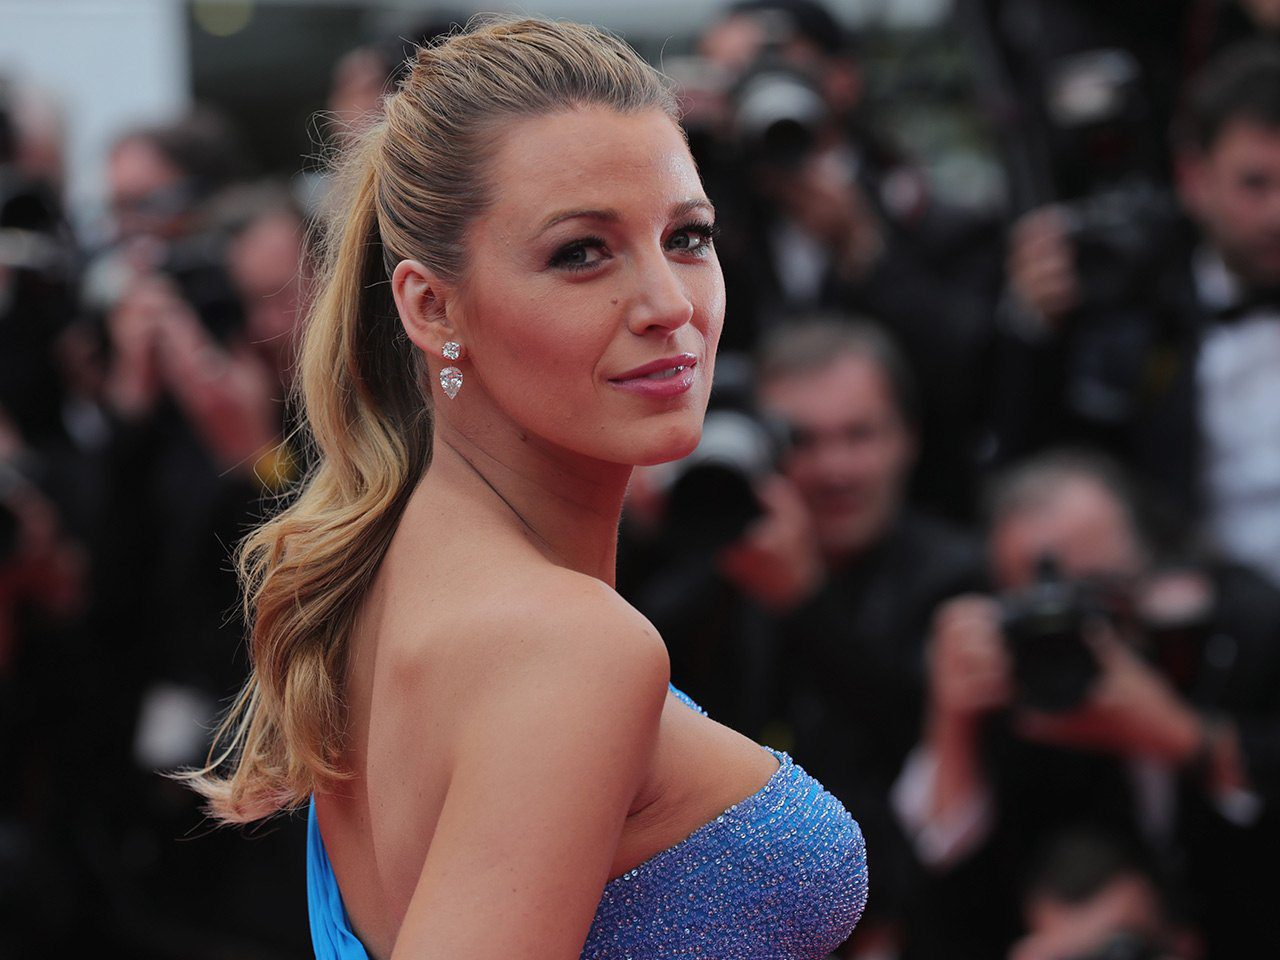 IS Blake Lively Pregnant